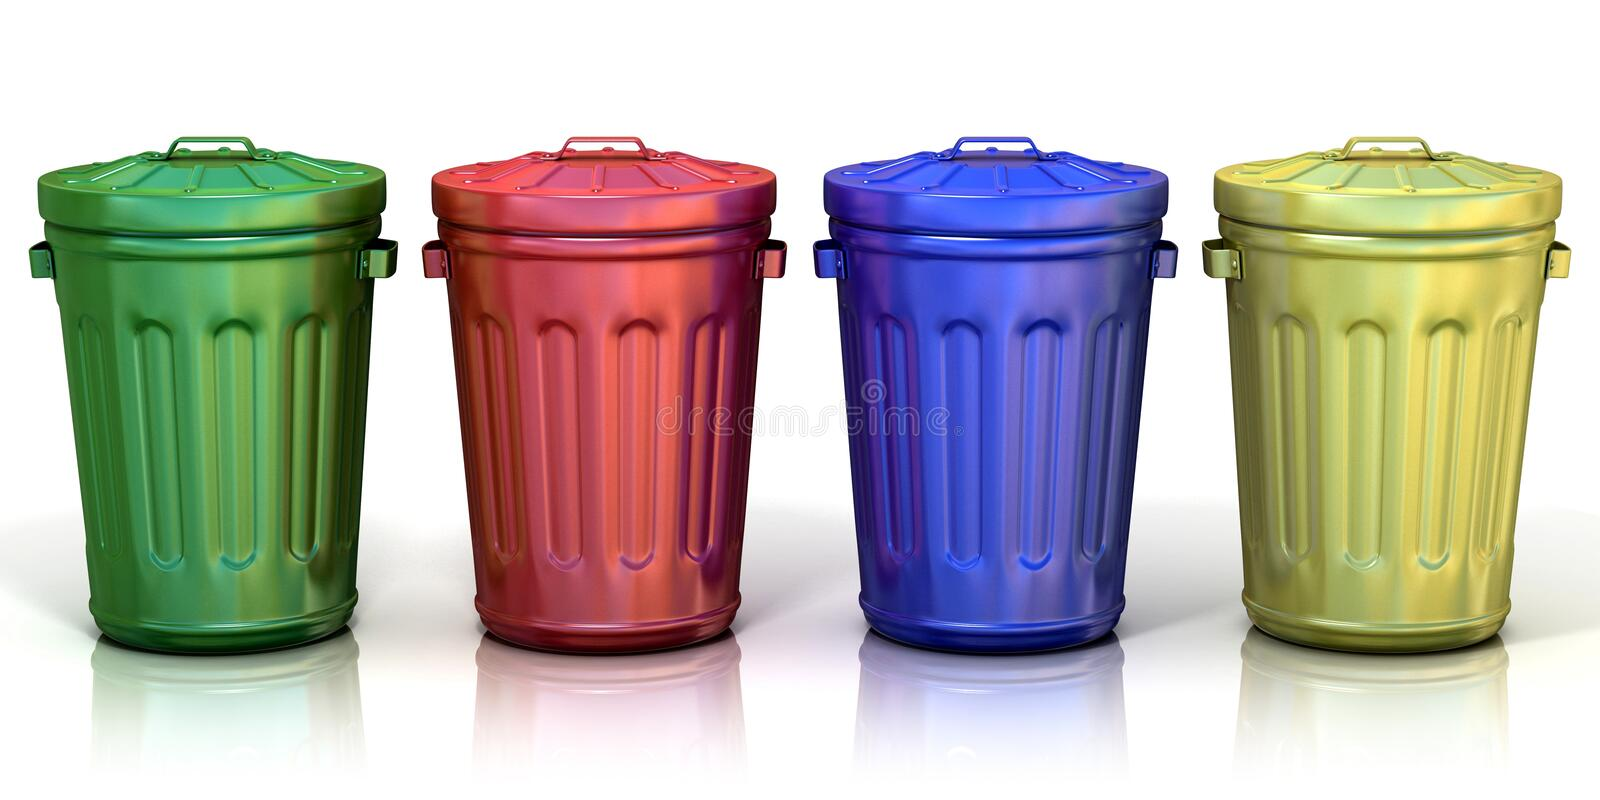 Four recycle bins for recycling paper, metal, glass and plastic royalty free illustration